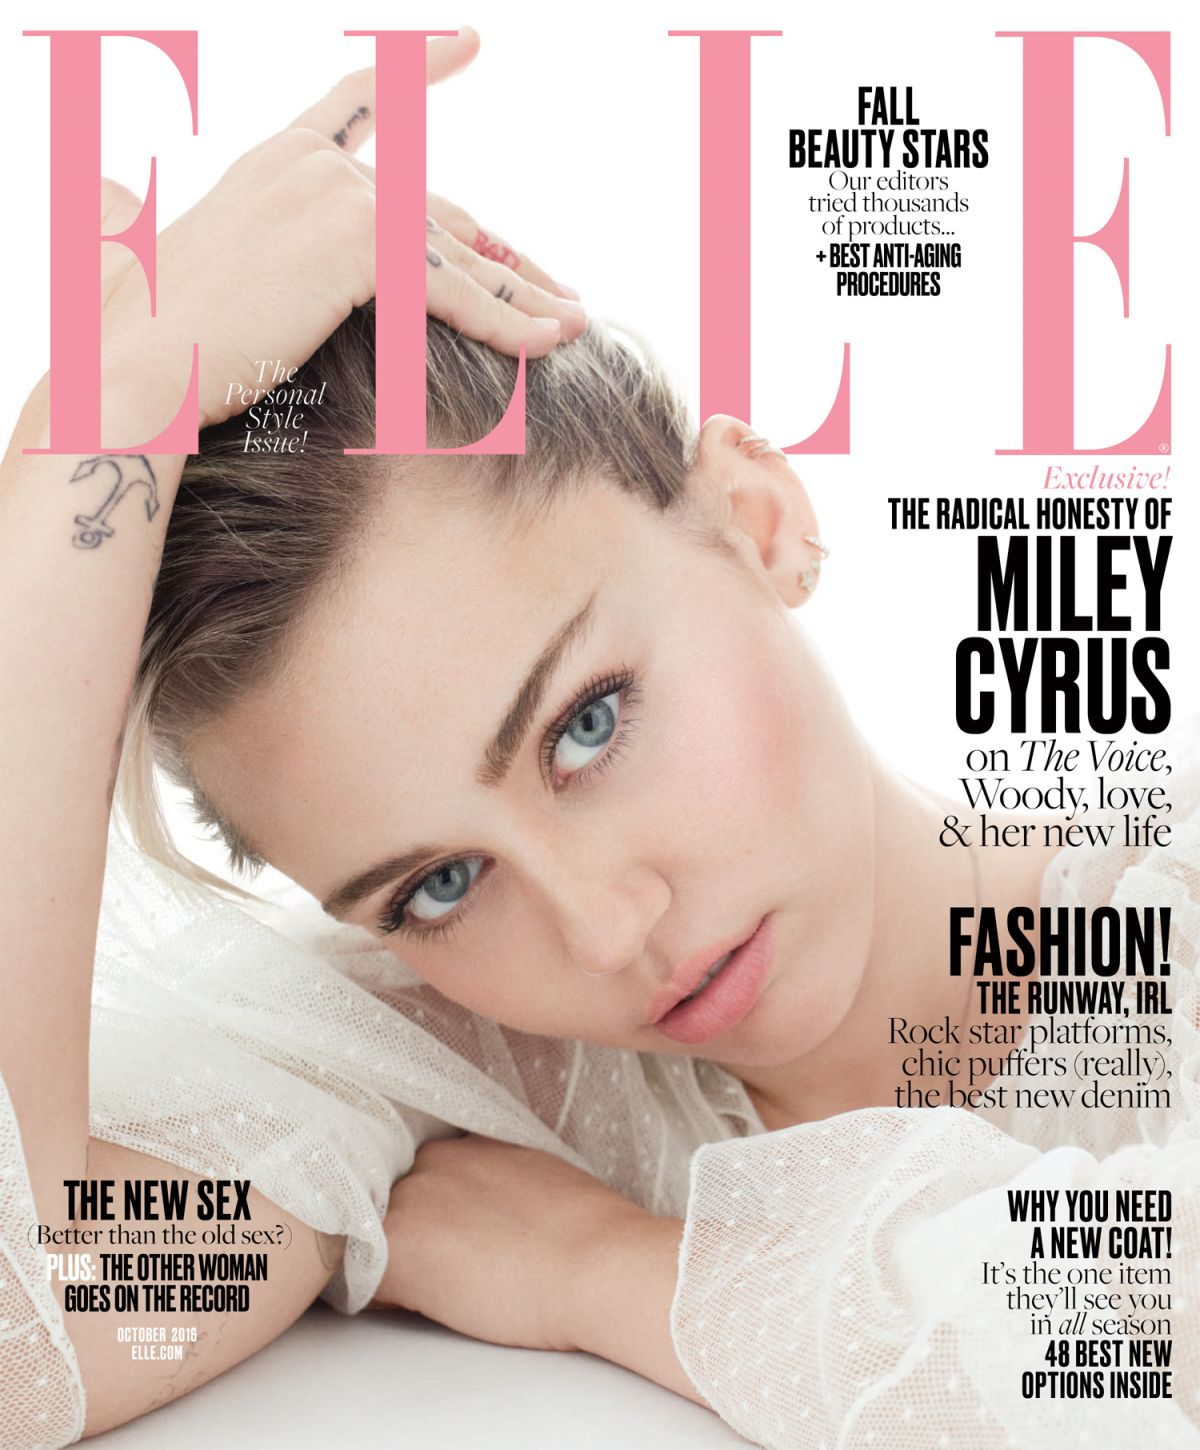 MILEY CYRUS in Elle Magazine, October 2016 Issue